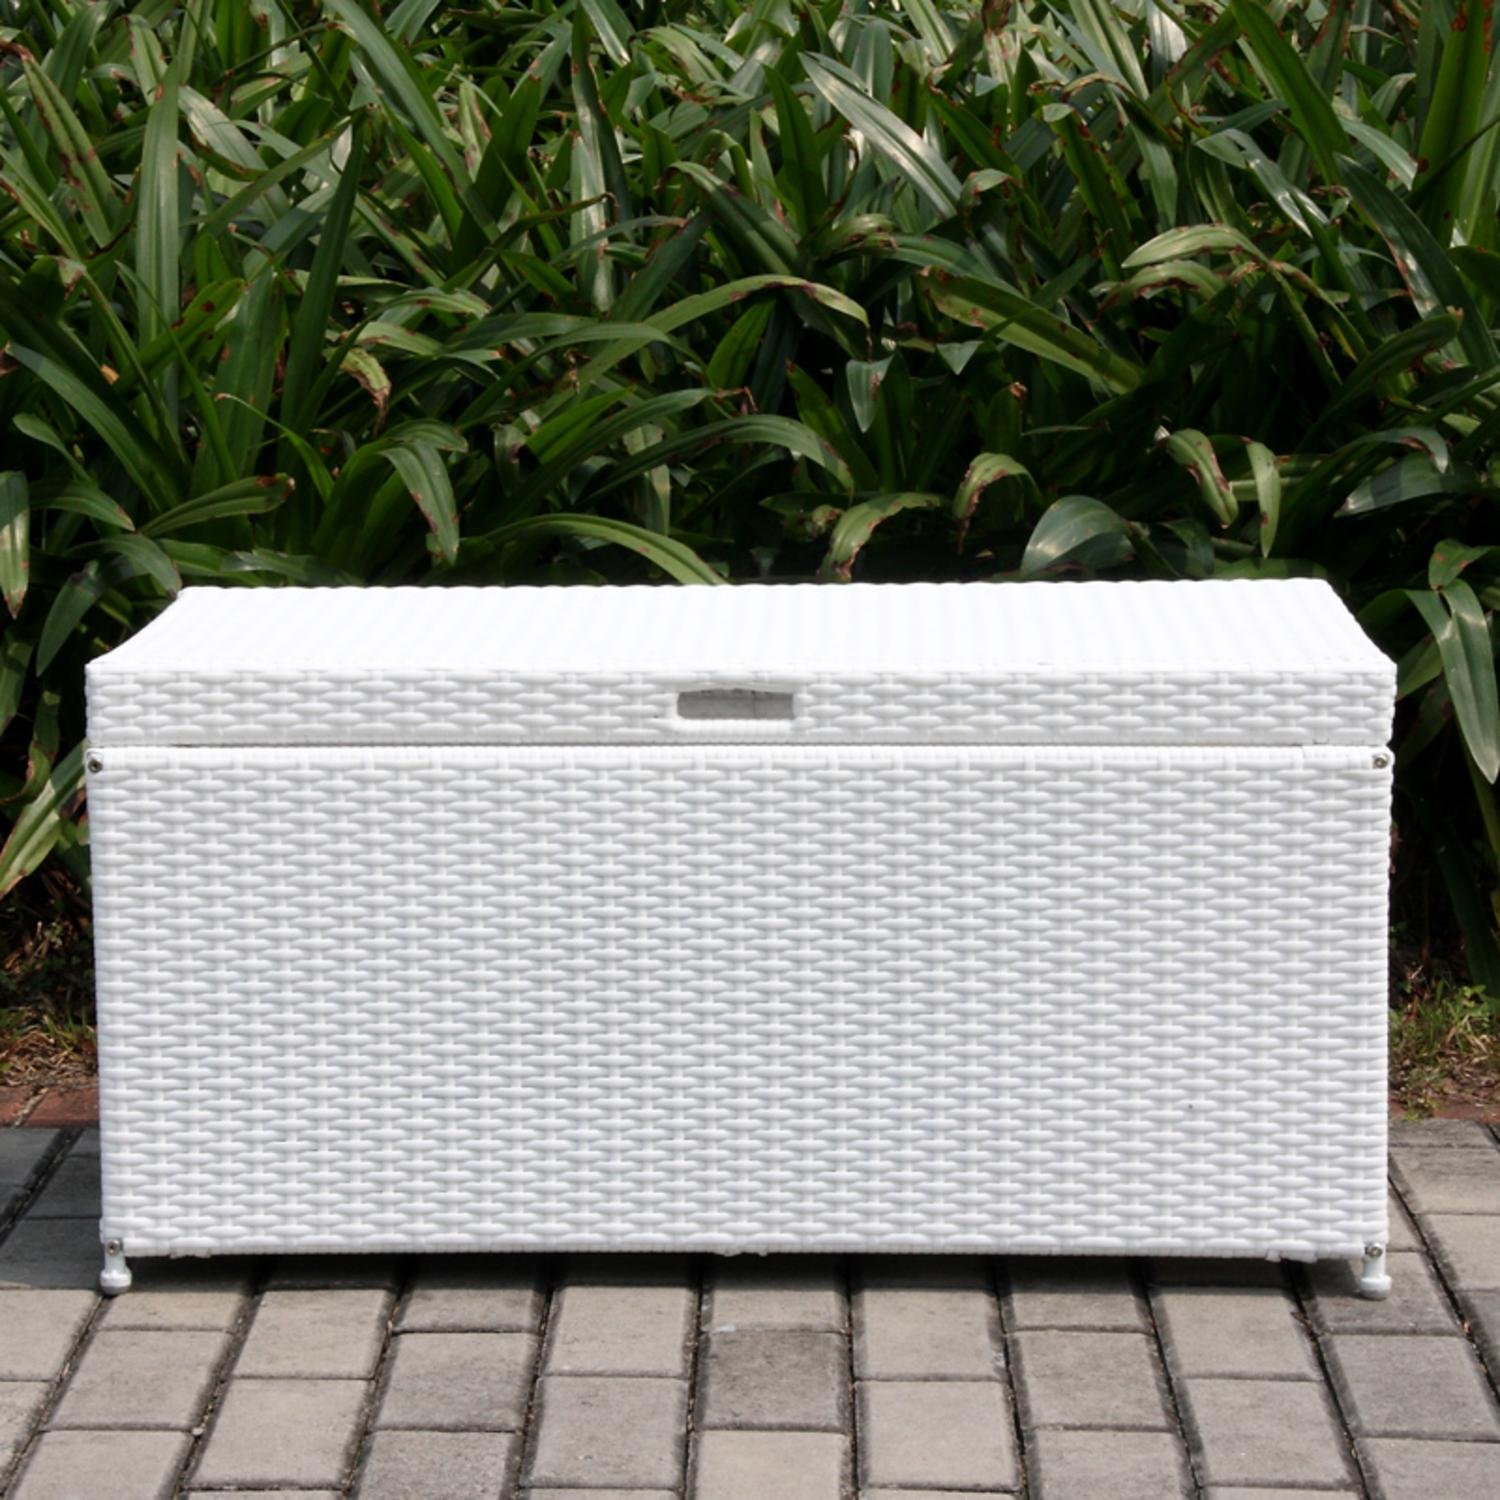 Get Quotations 40 White Resin Wicker Outdoor Patio Garden Hinged Lidded Storage Deck Box